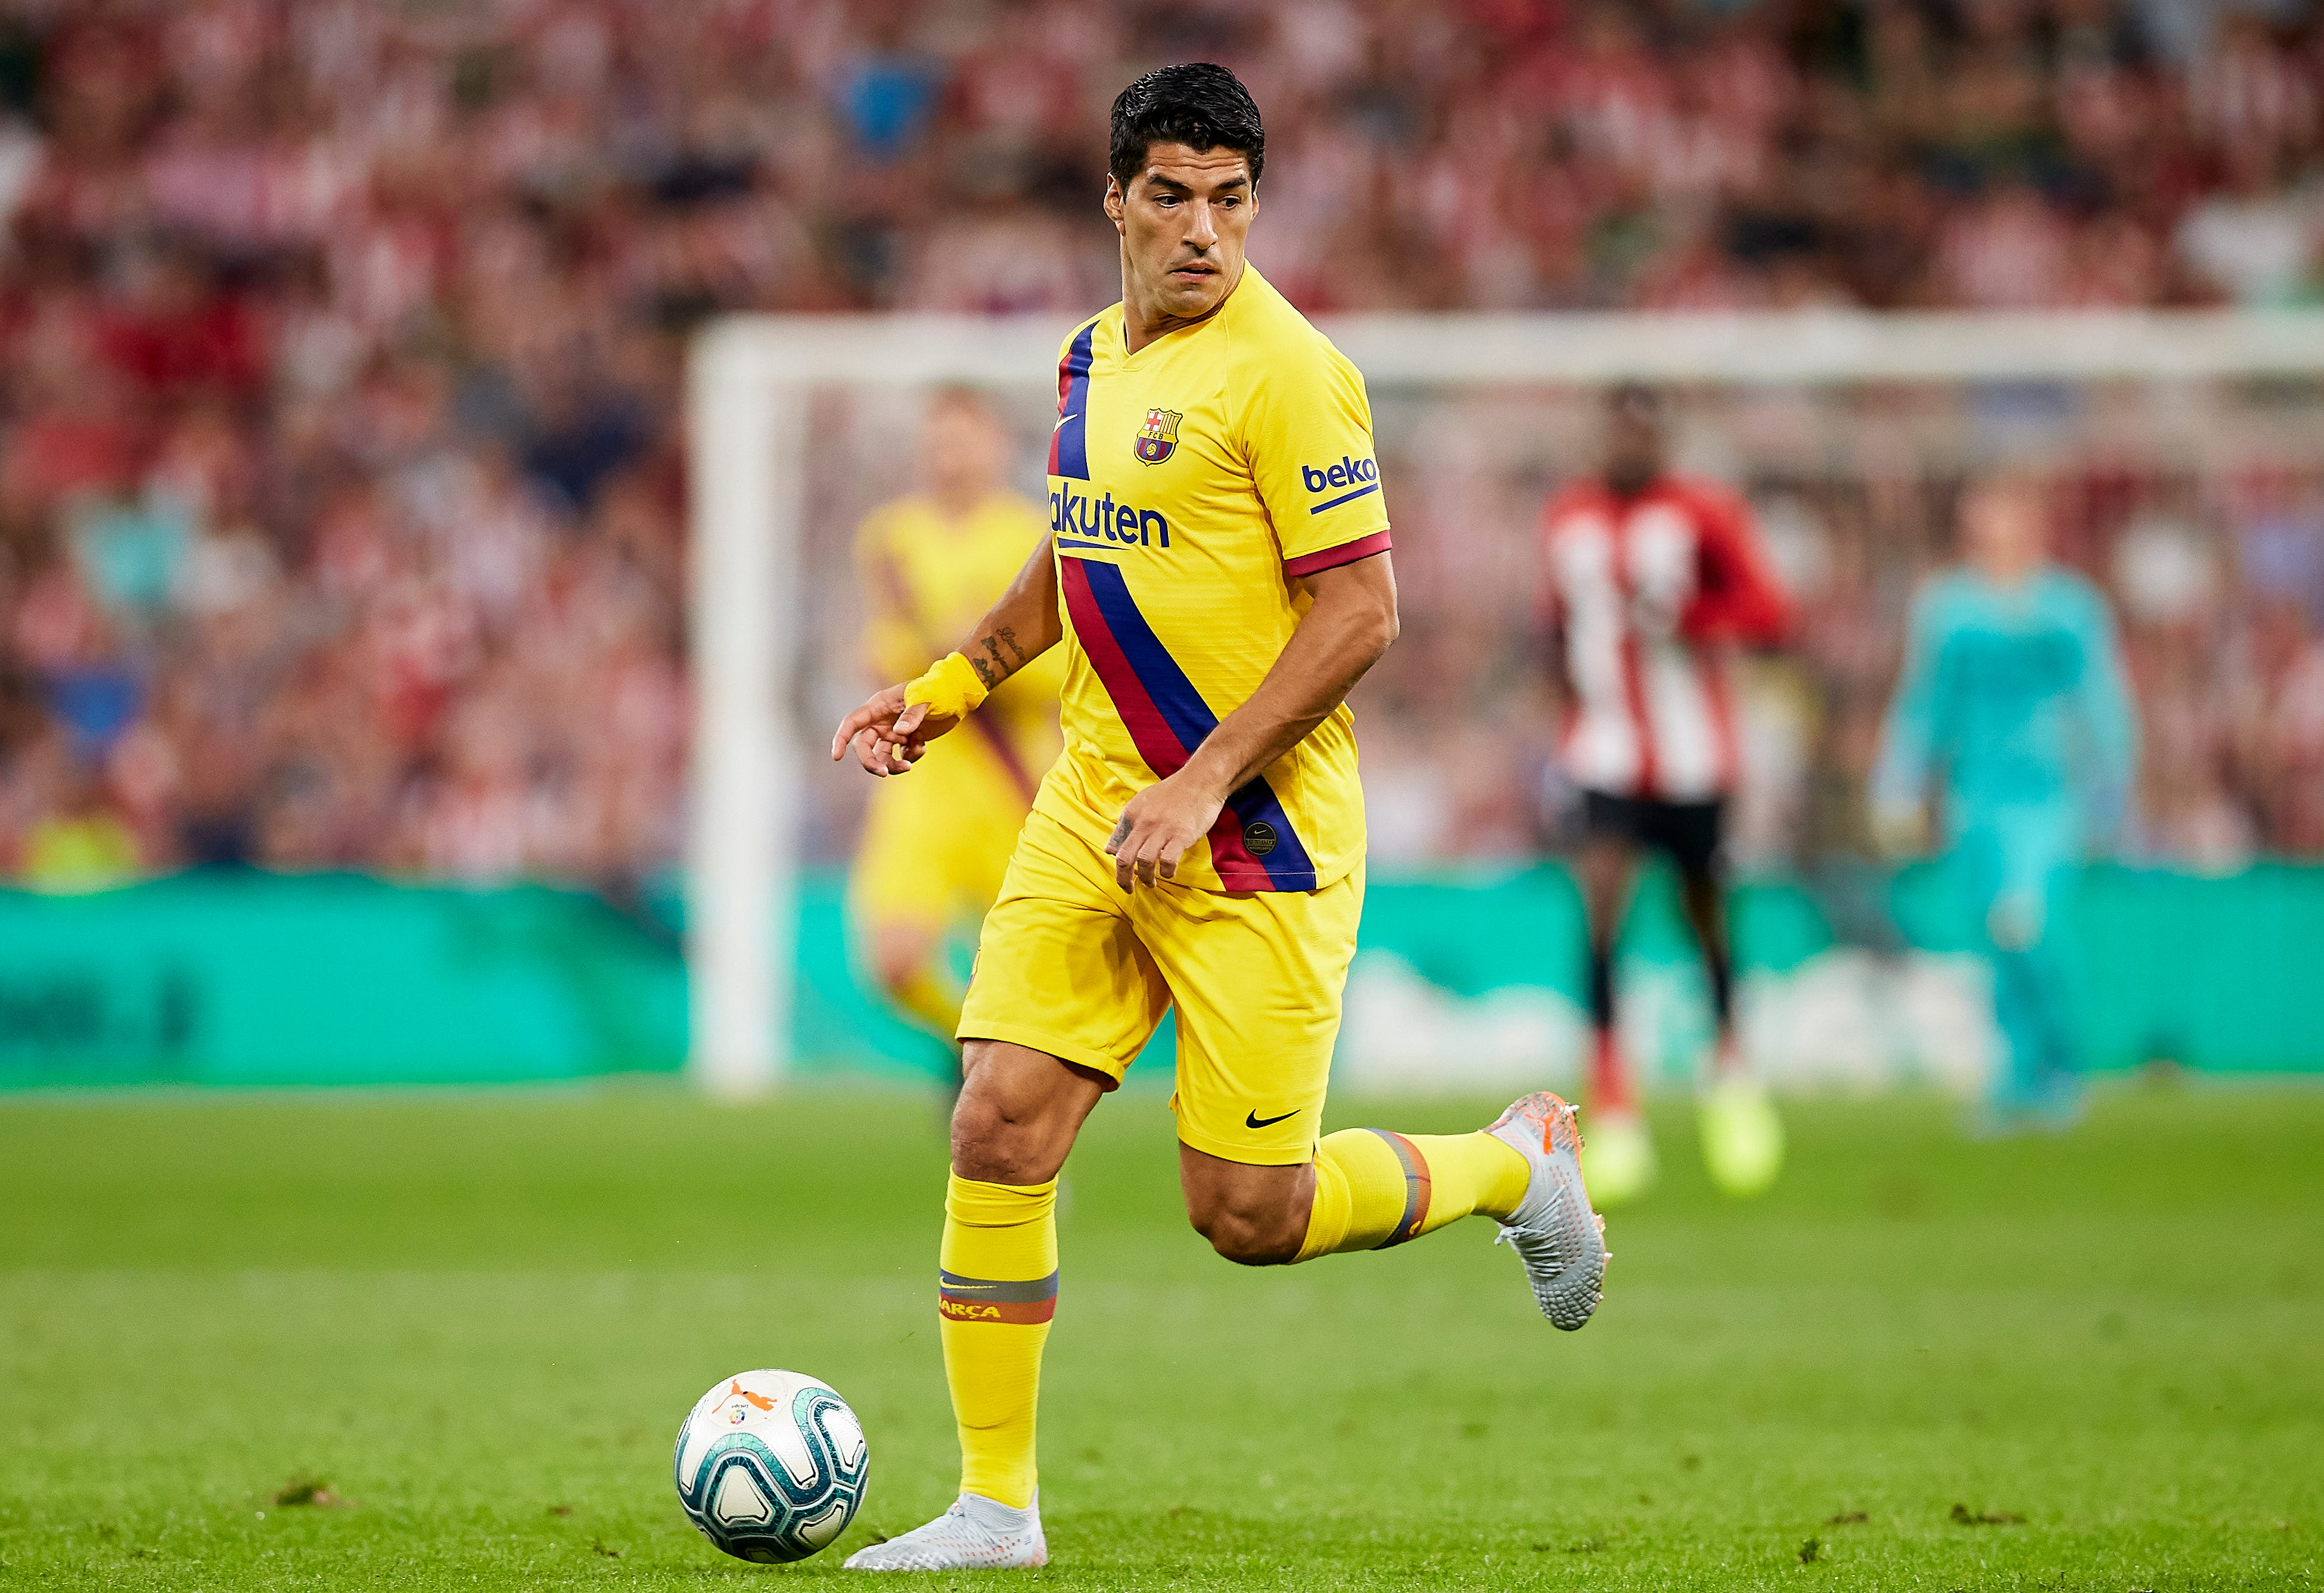 Suárez out injured in 1st half of Barcelona's opening game